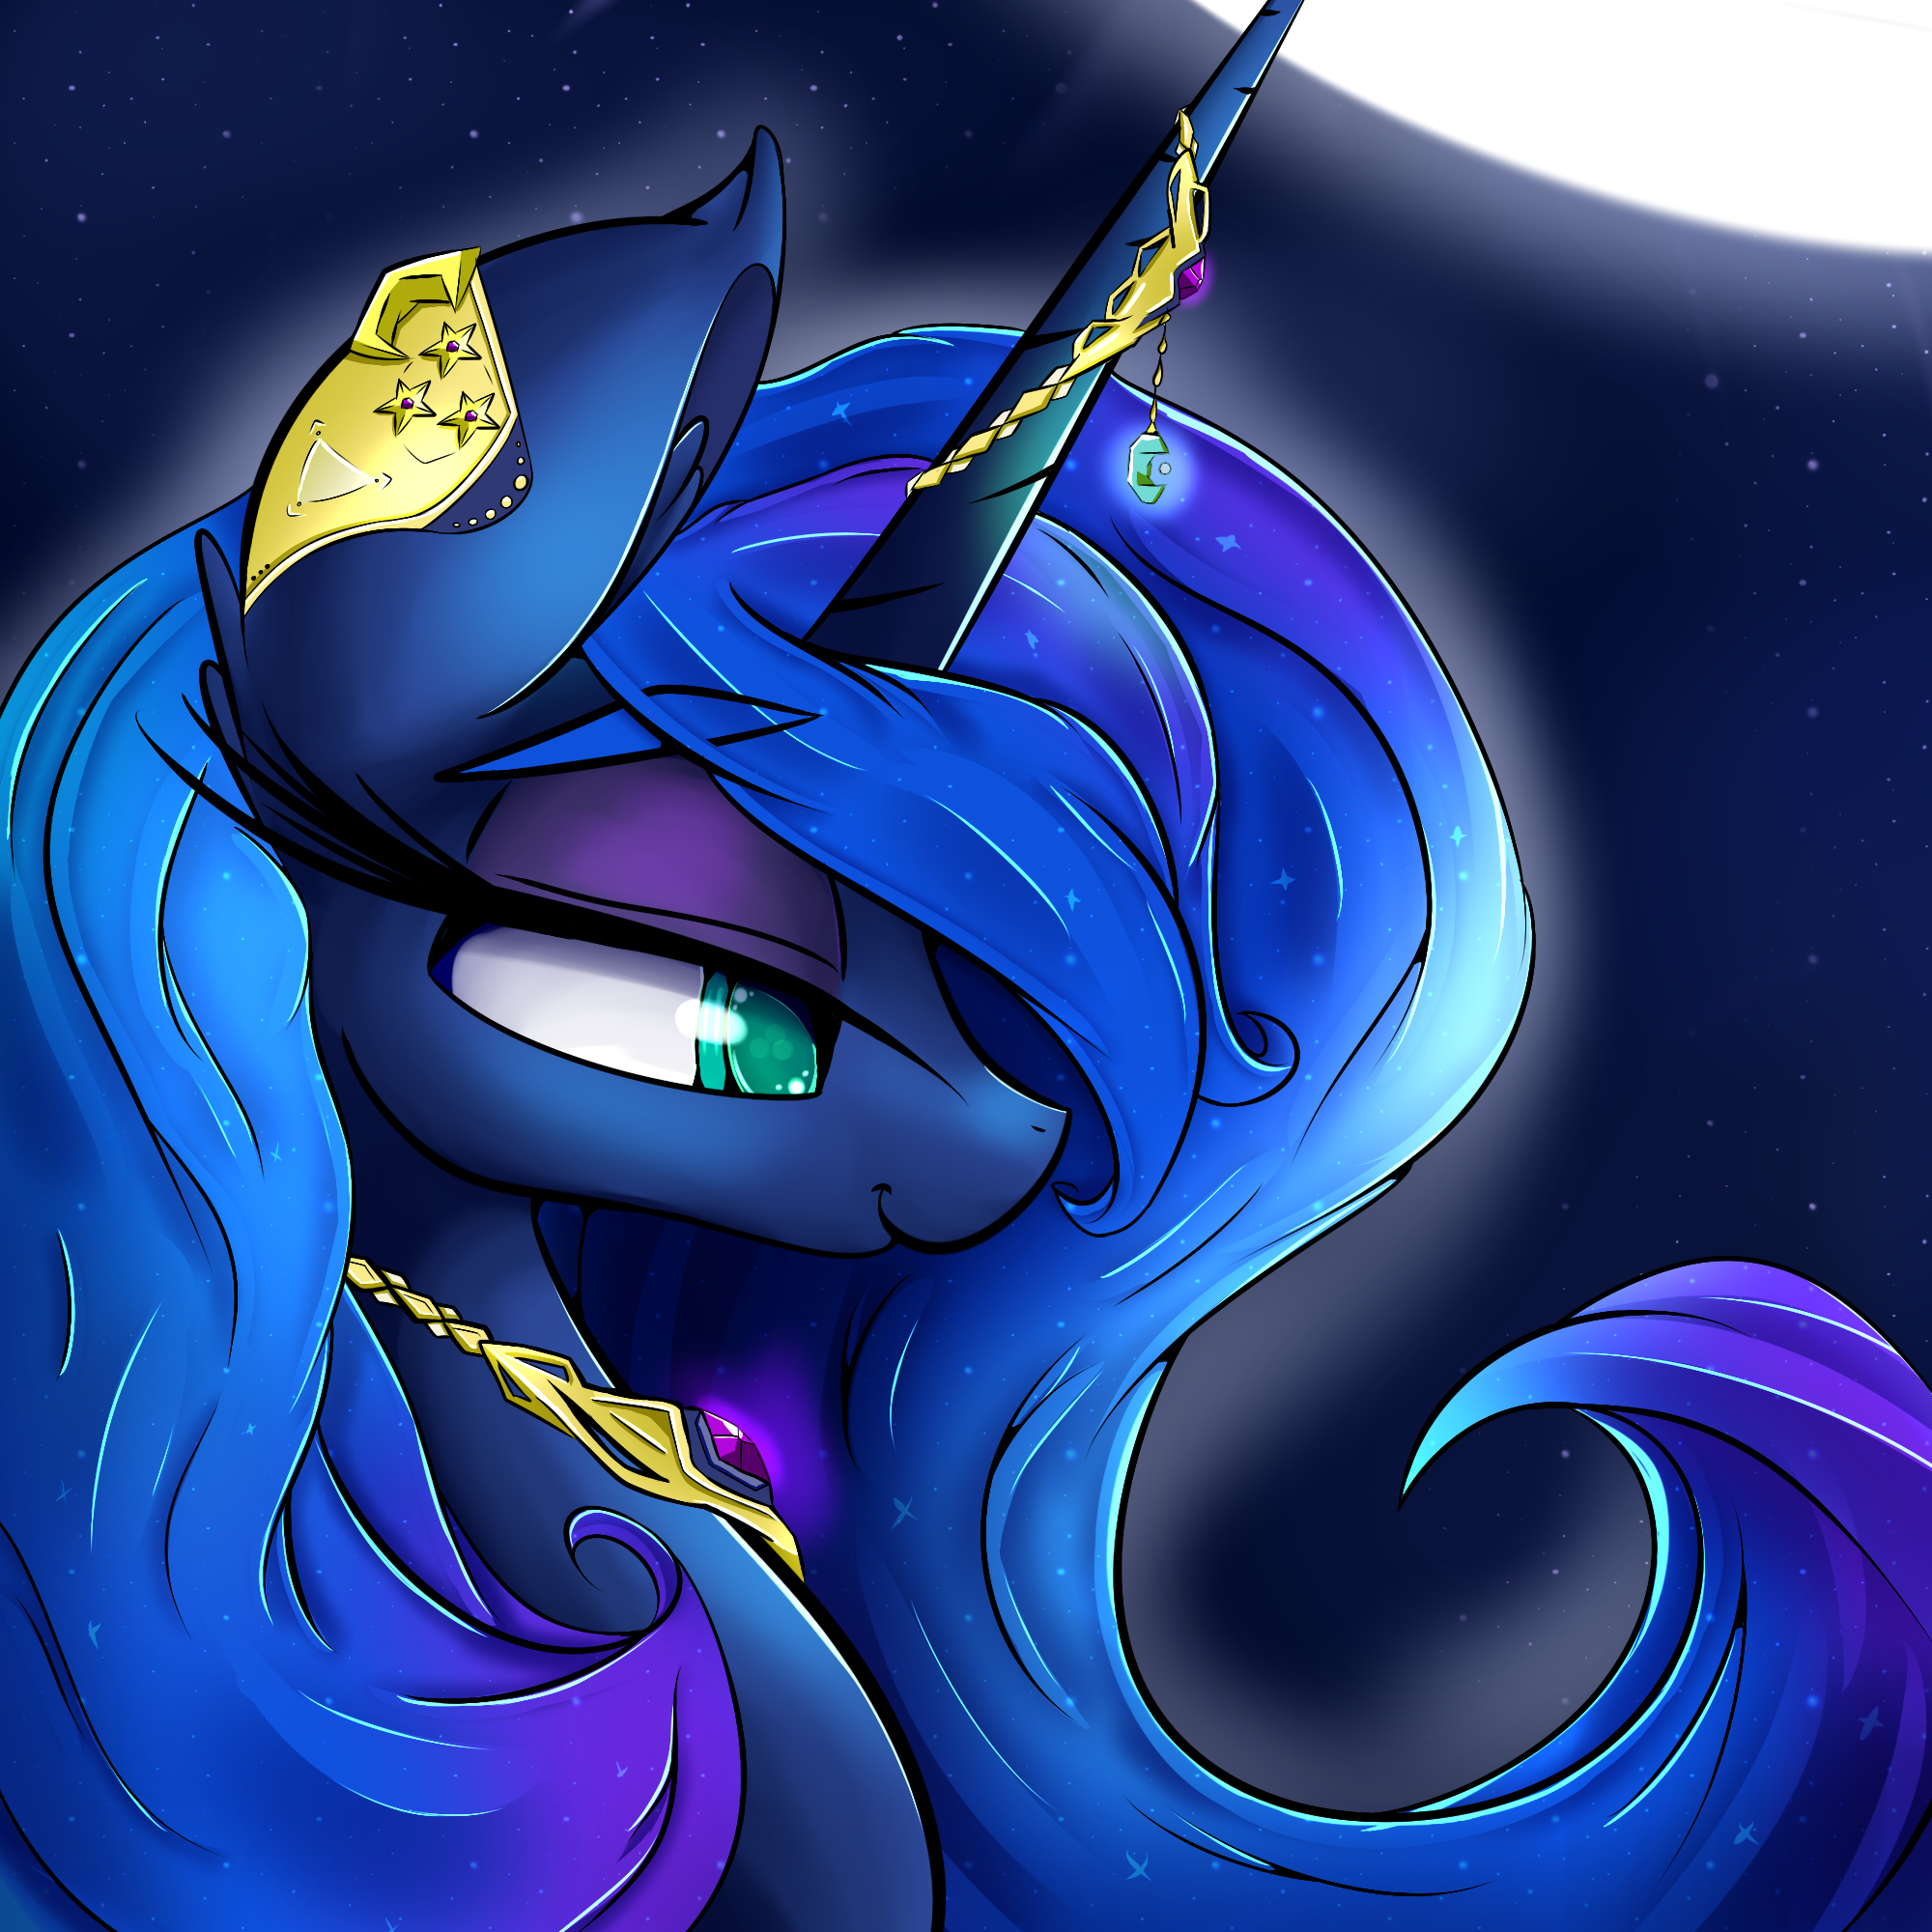 beauty_of_the_night_by_madacon-d8is4tg.p